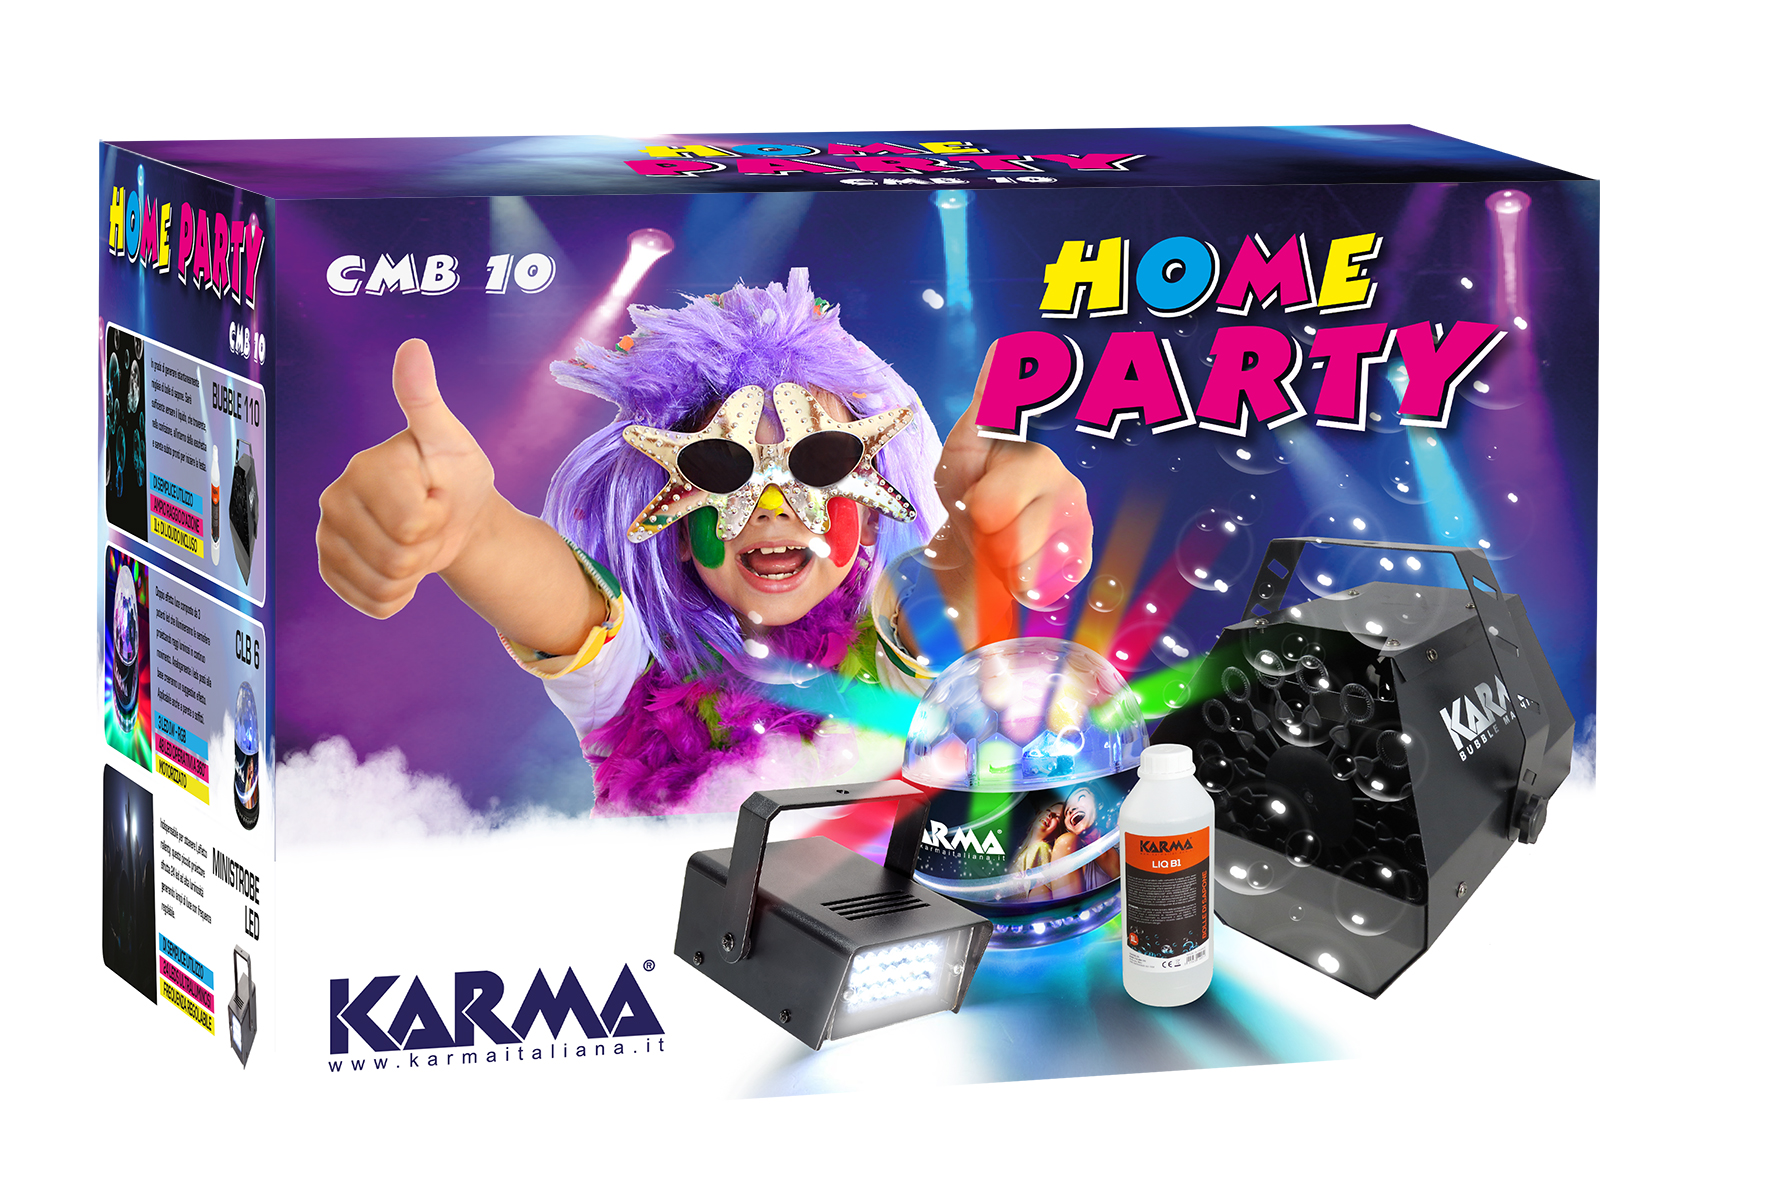 Kit Home Party KARMA CMB 10